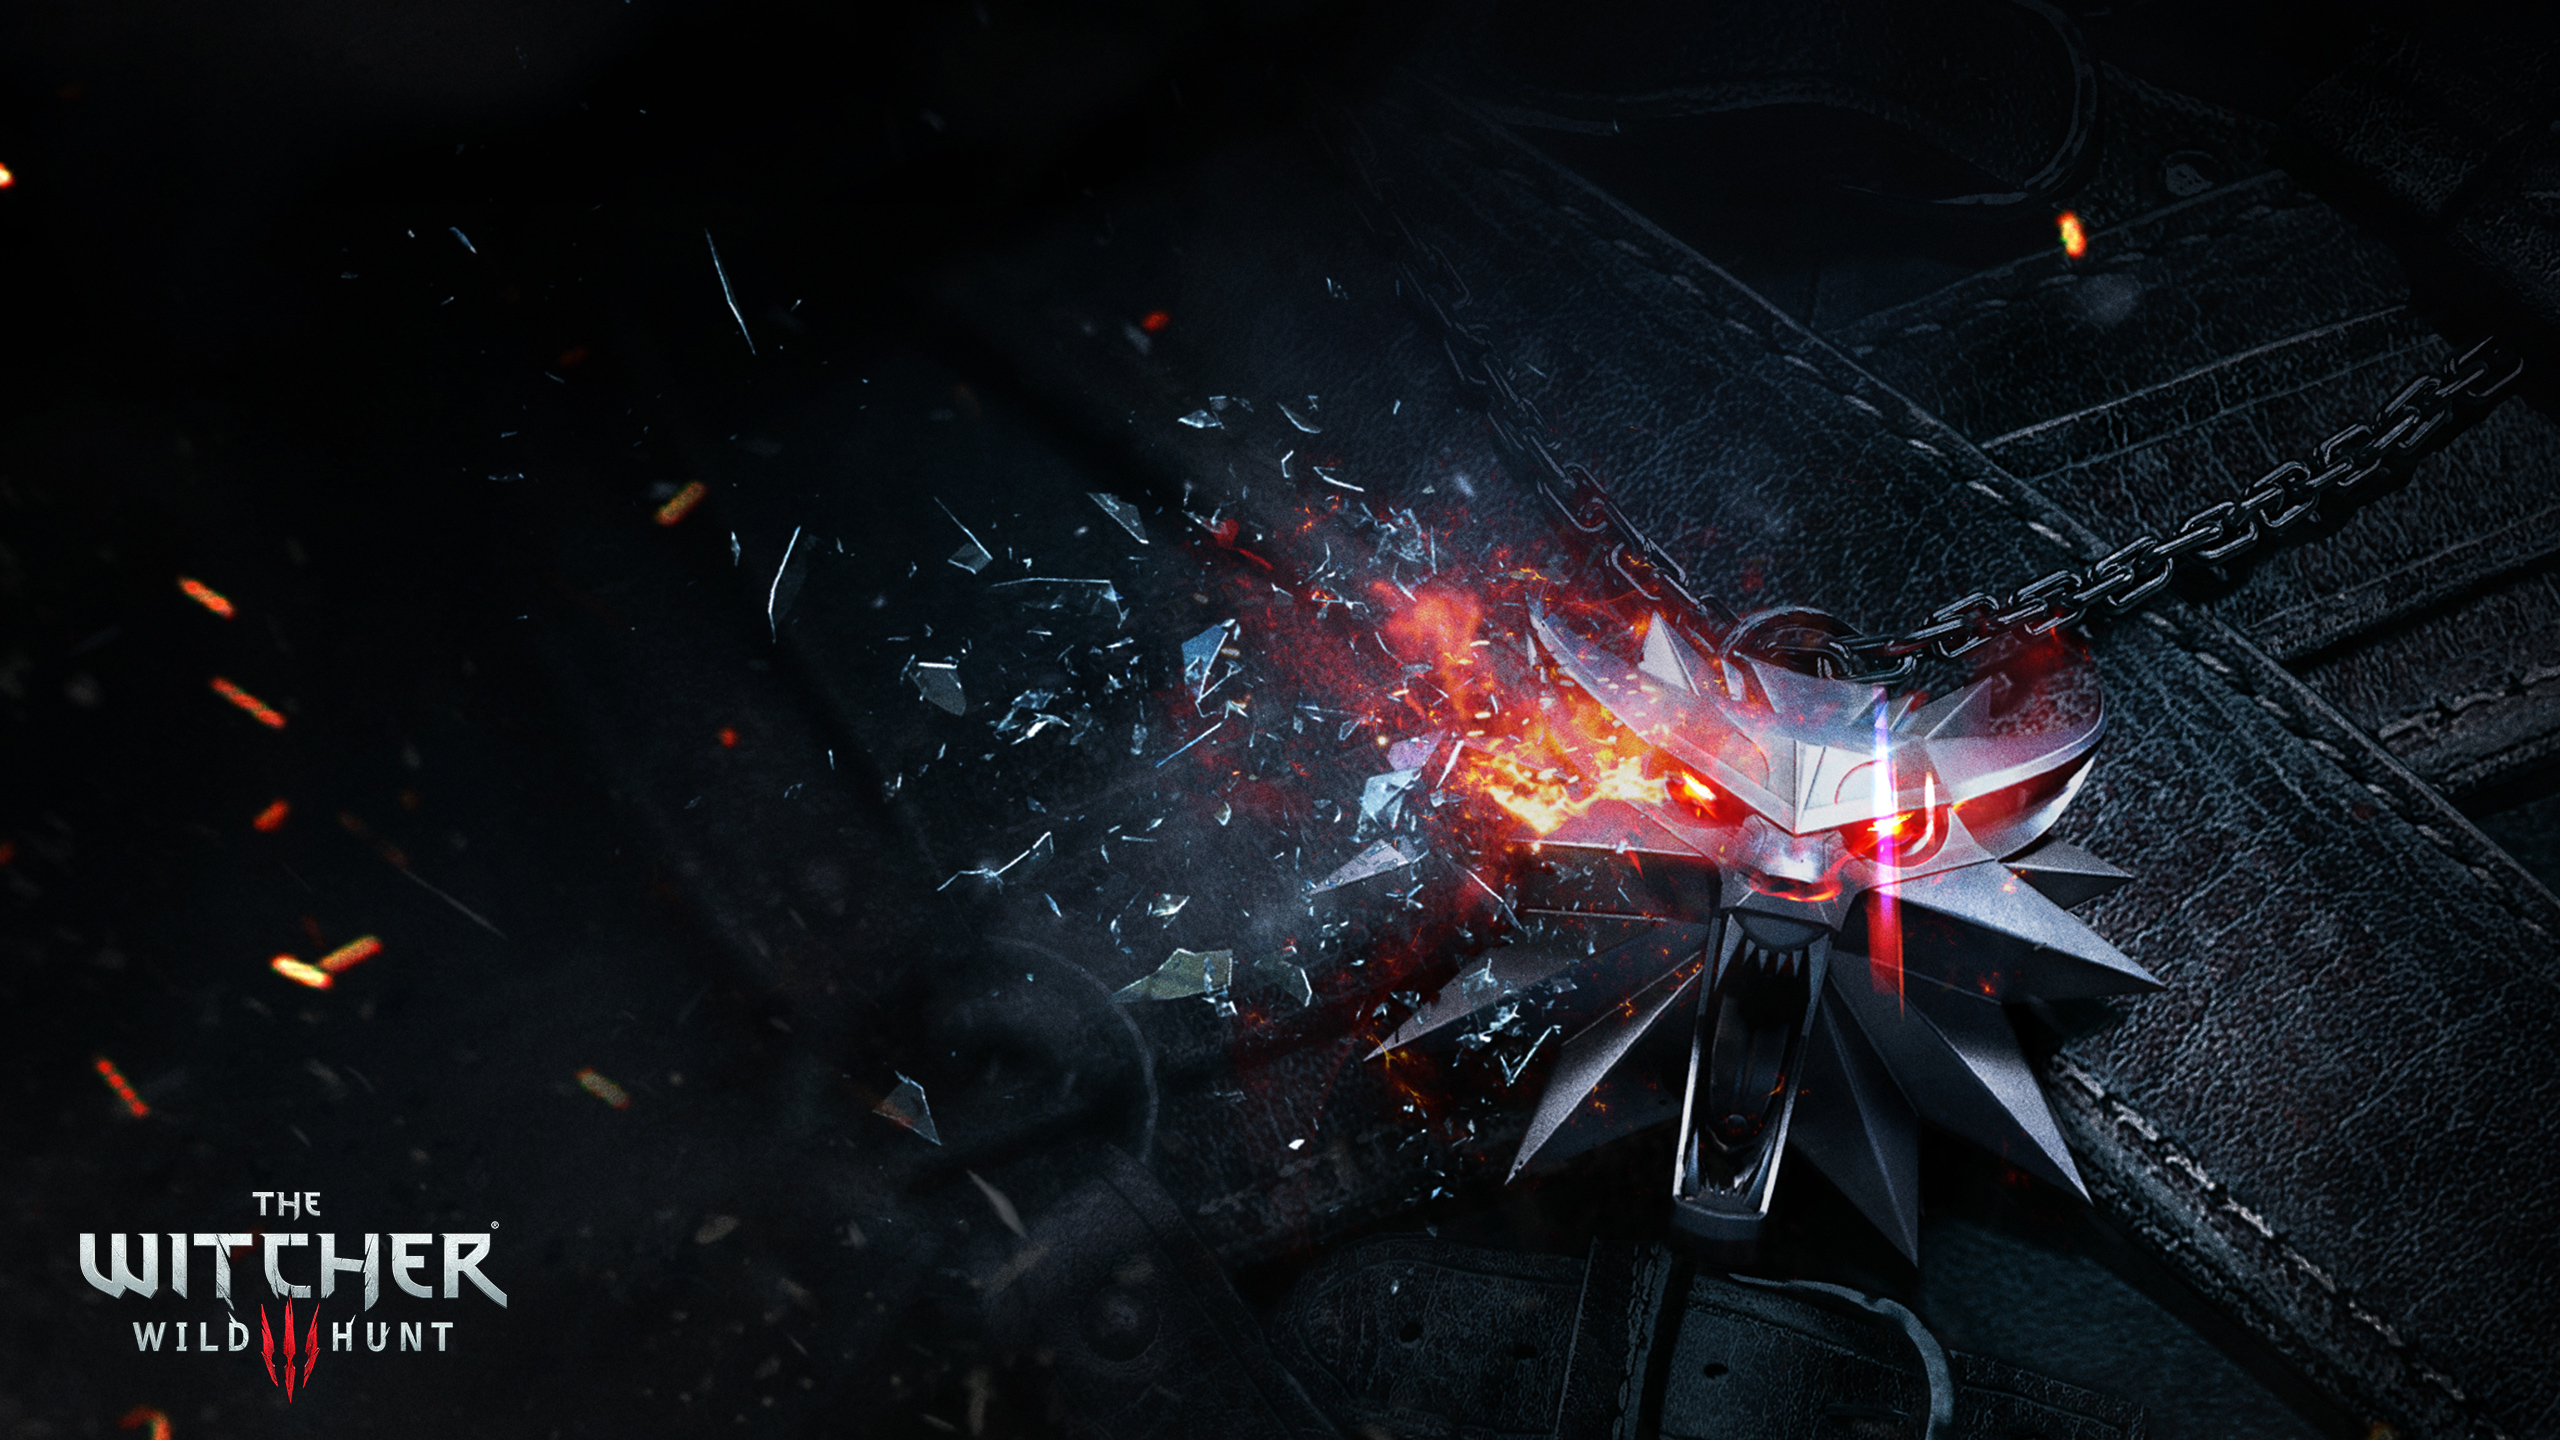 649 The Witcher 3 Wild Hunt HD Wallpapers Background Images 2560x1440